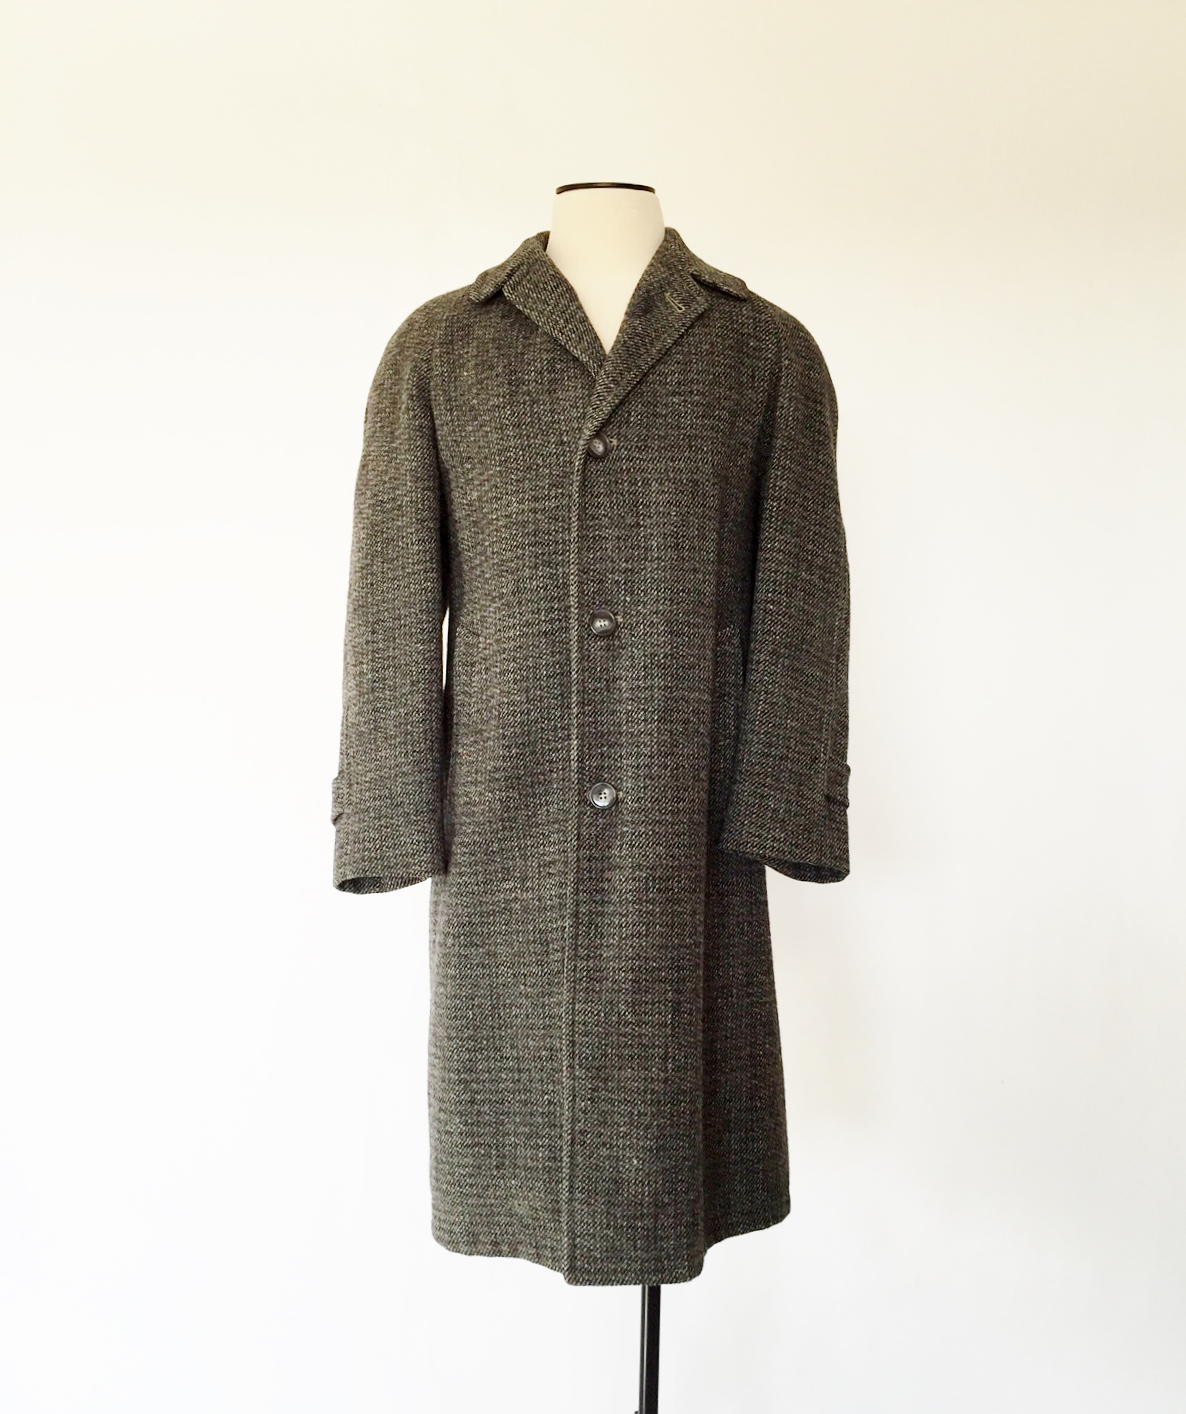 1930's overcoat in Harris Tweed